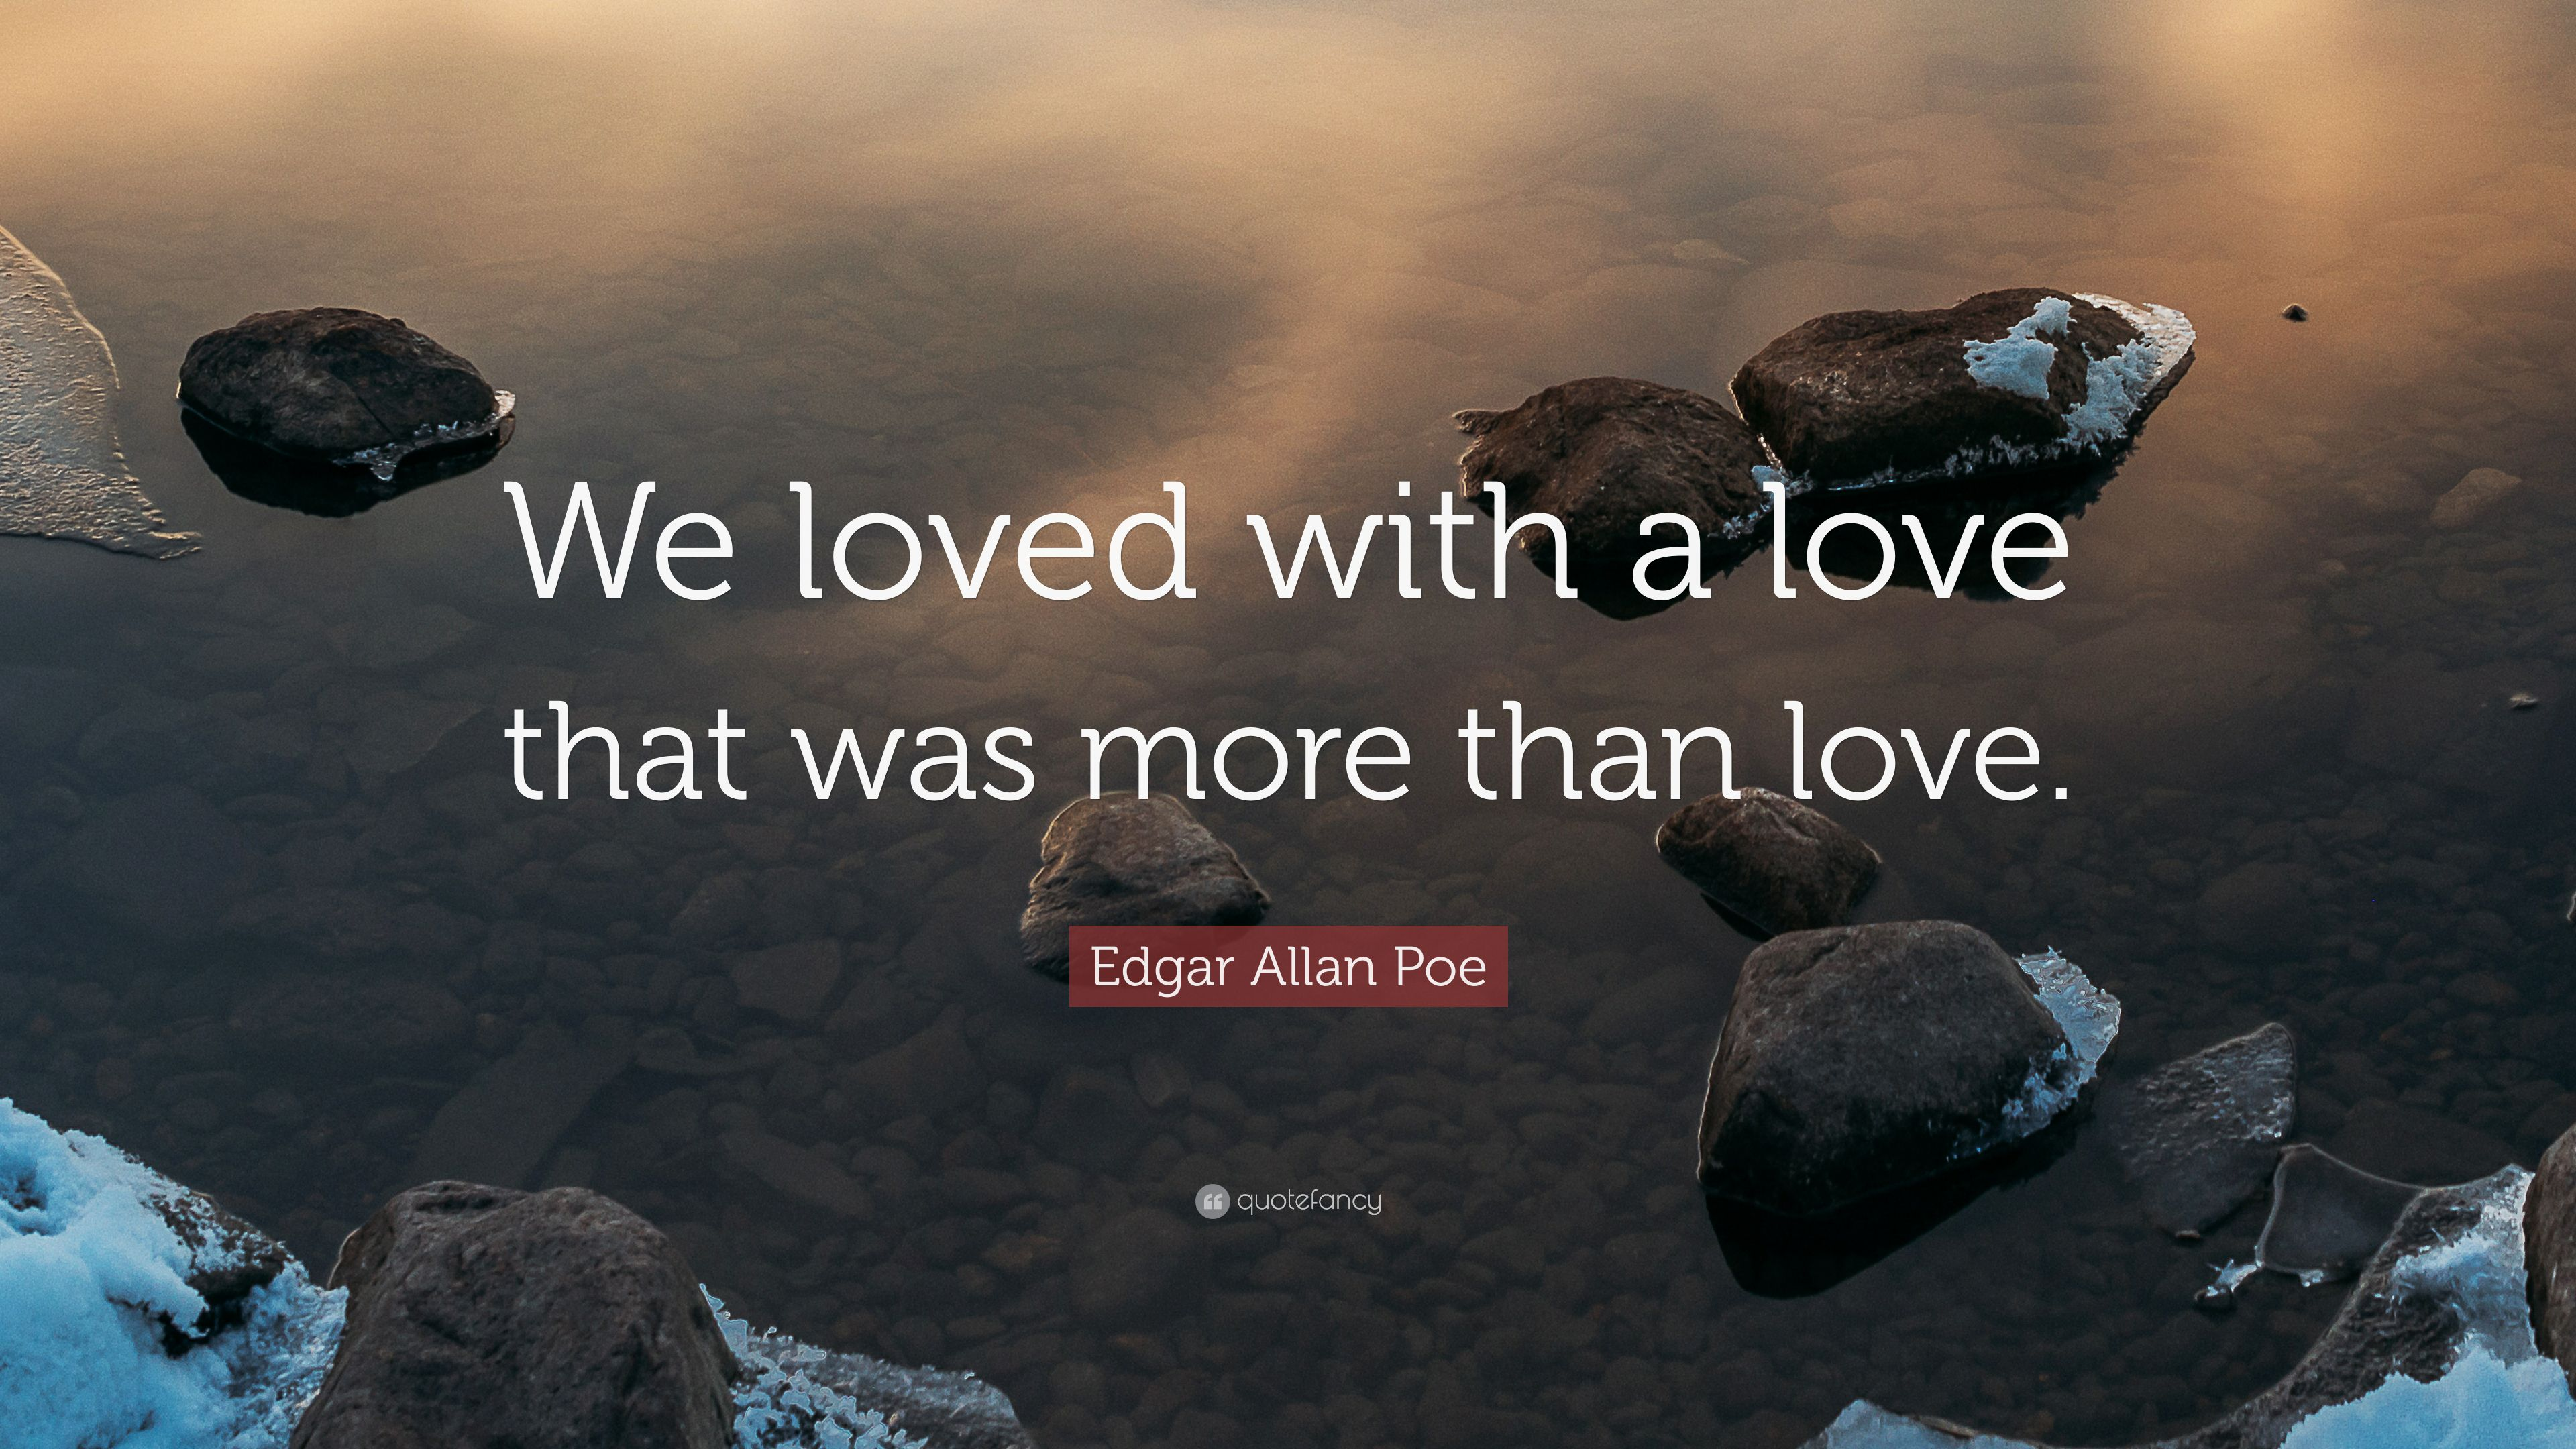 Shakespeare Wallpapers With Quotes Edgar Allan Poe Quote We Loved With A Love That Was More